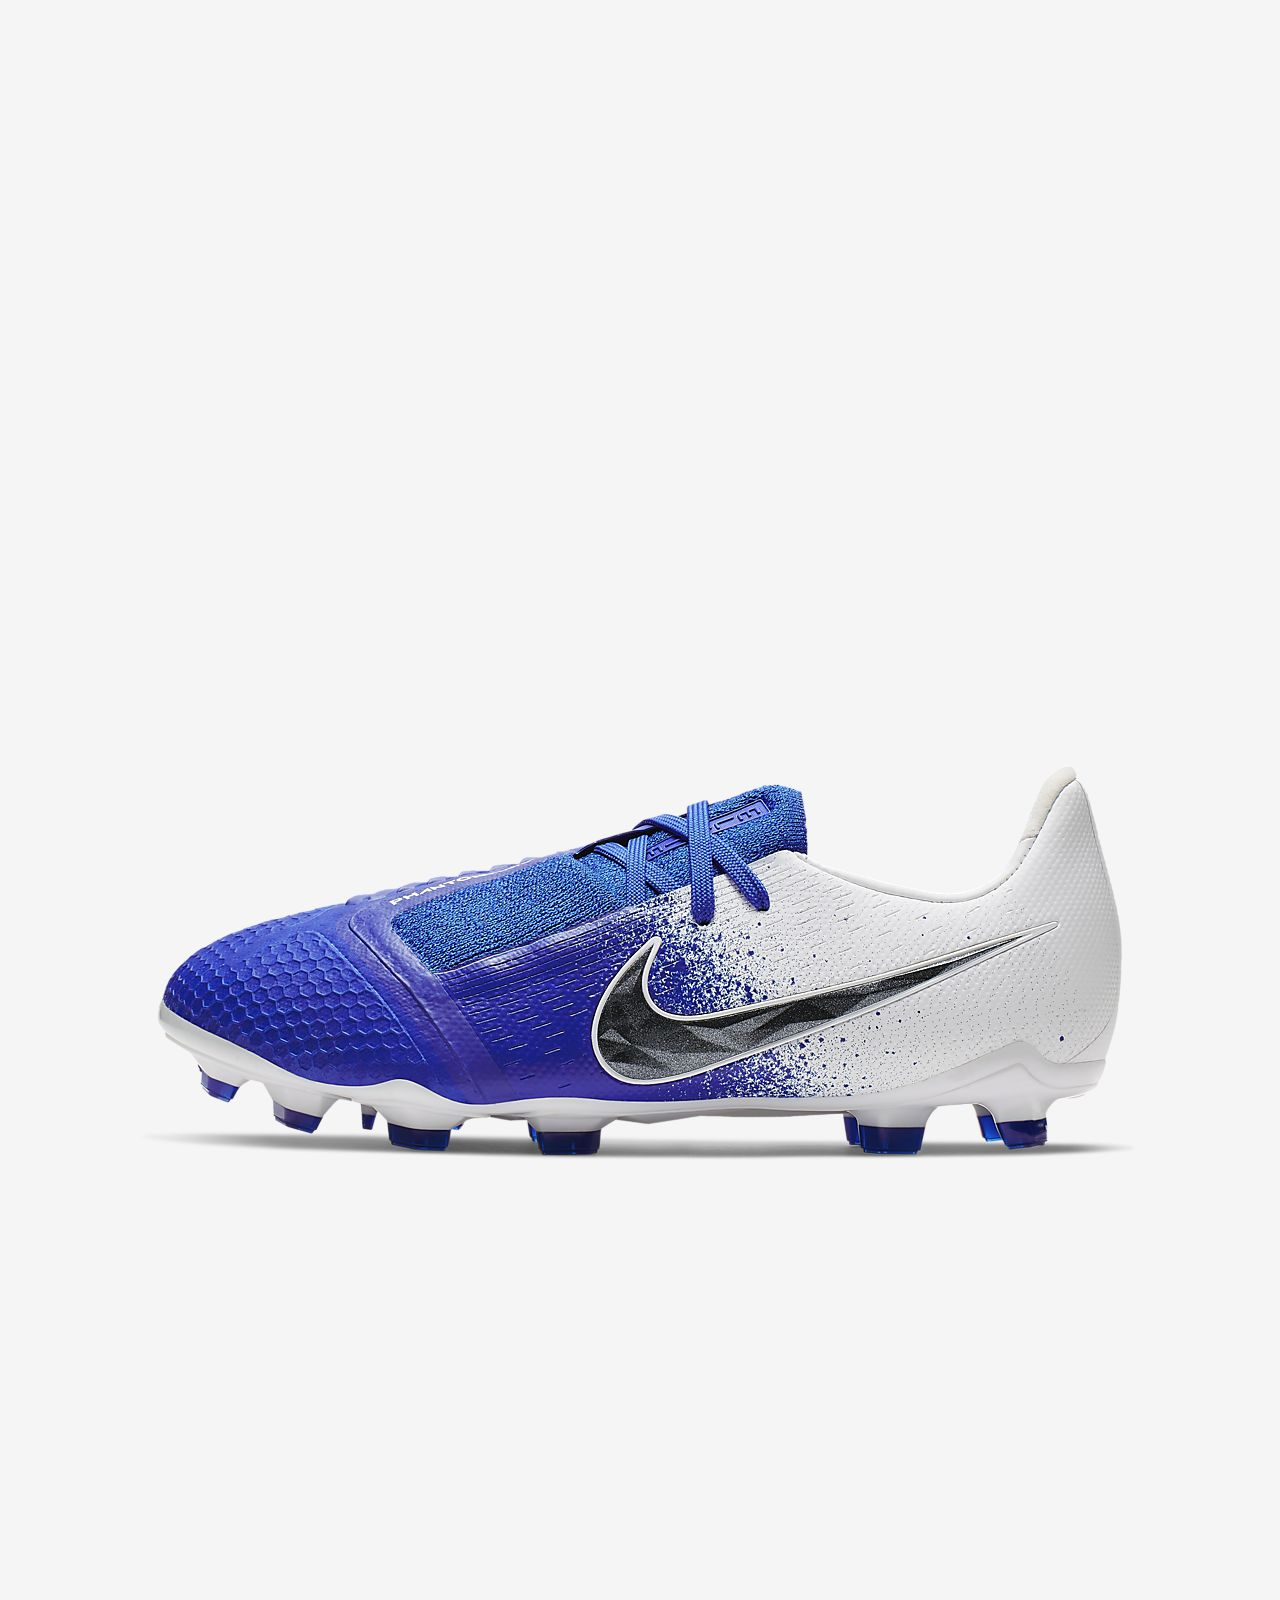 Nike Jr. Phantom Venom Elite FG Big Kids' Firm-Ground Soccer Cleat